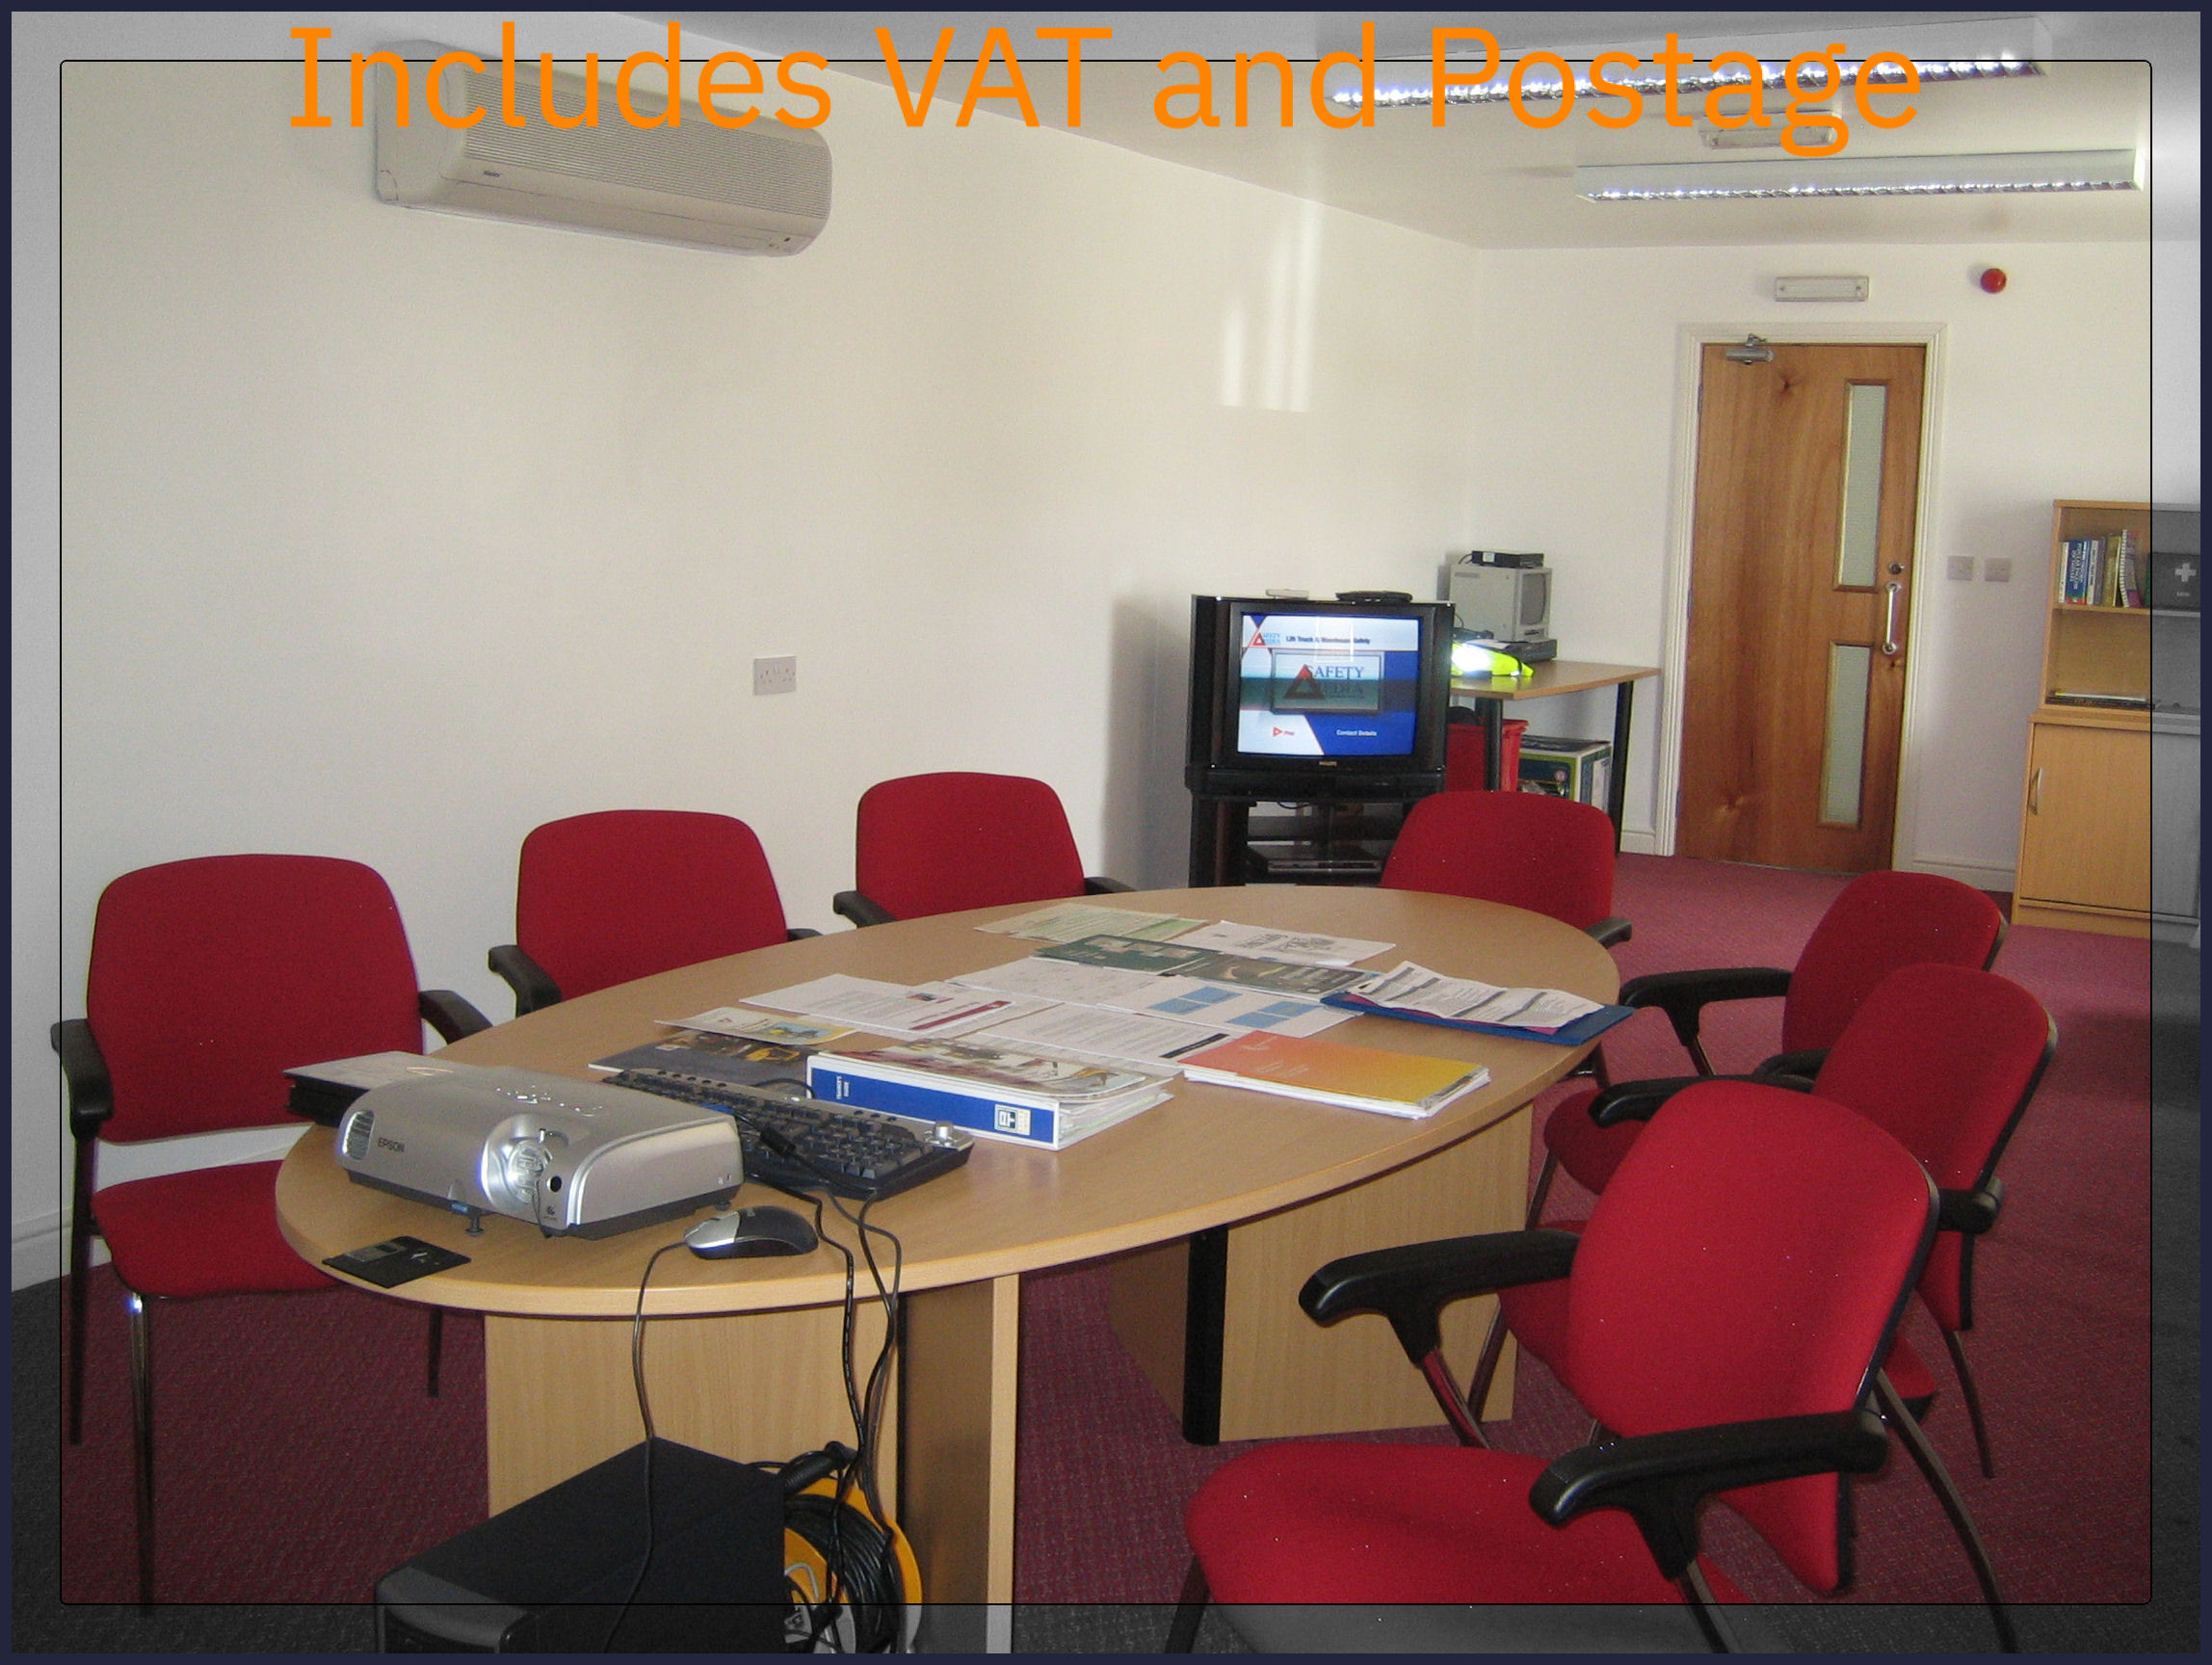 Training Room Digital Tachograph Training